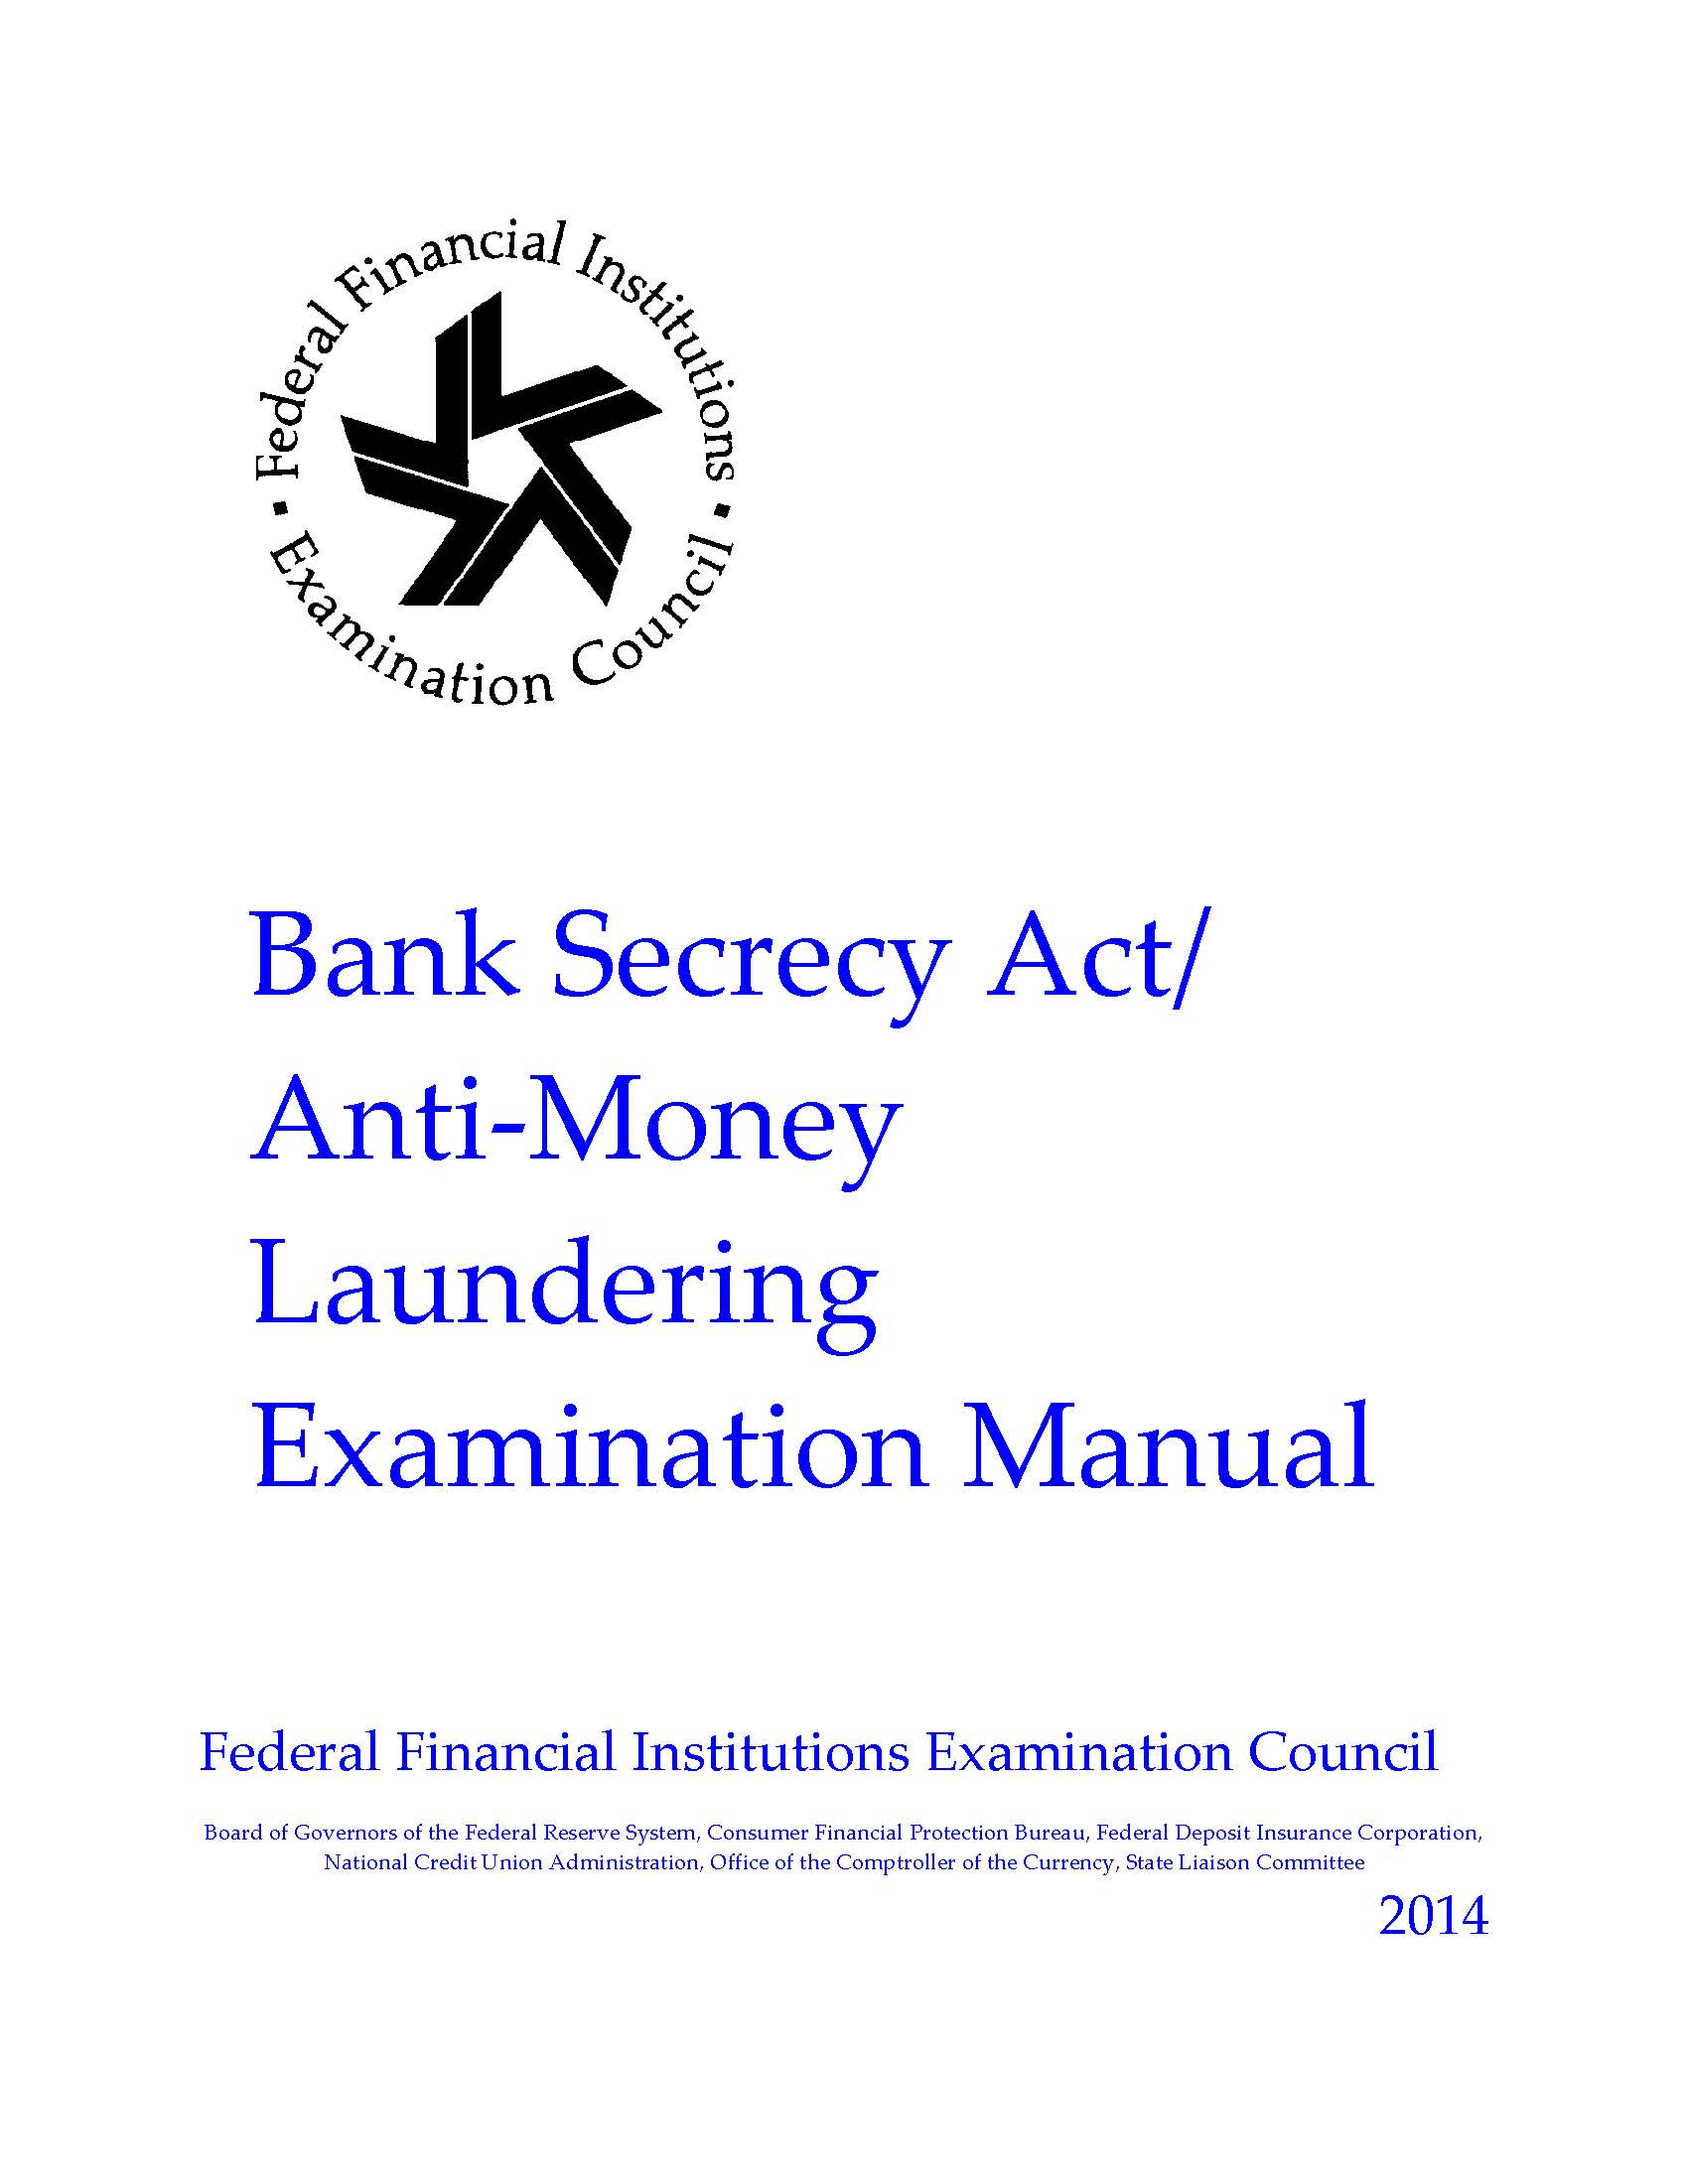 Bank Secrecy Act/Anti-Money Laundering Examination Manual | U.S. Government  Bookstore